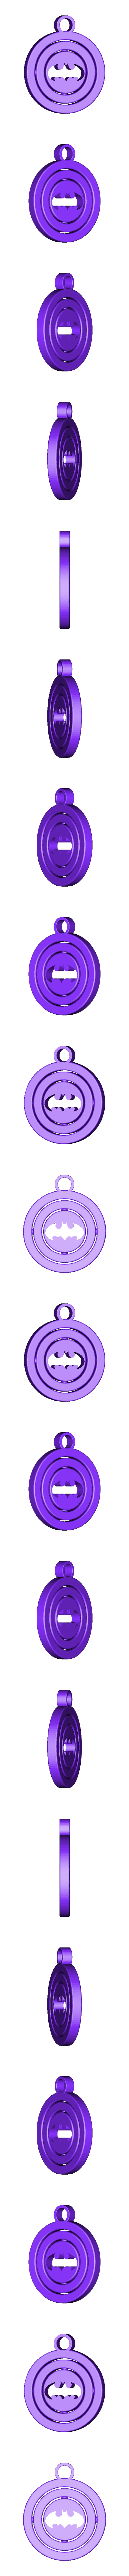 GMBL_New_BatMan.stl Download free STL file Signal Gimbal Keychains - Heroes & Logos • 3D printer design, ykratter